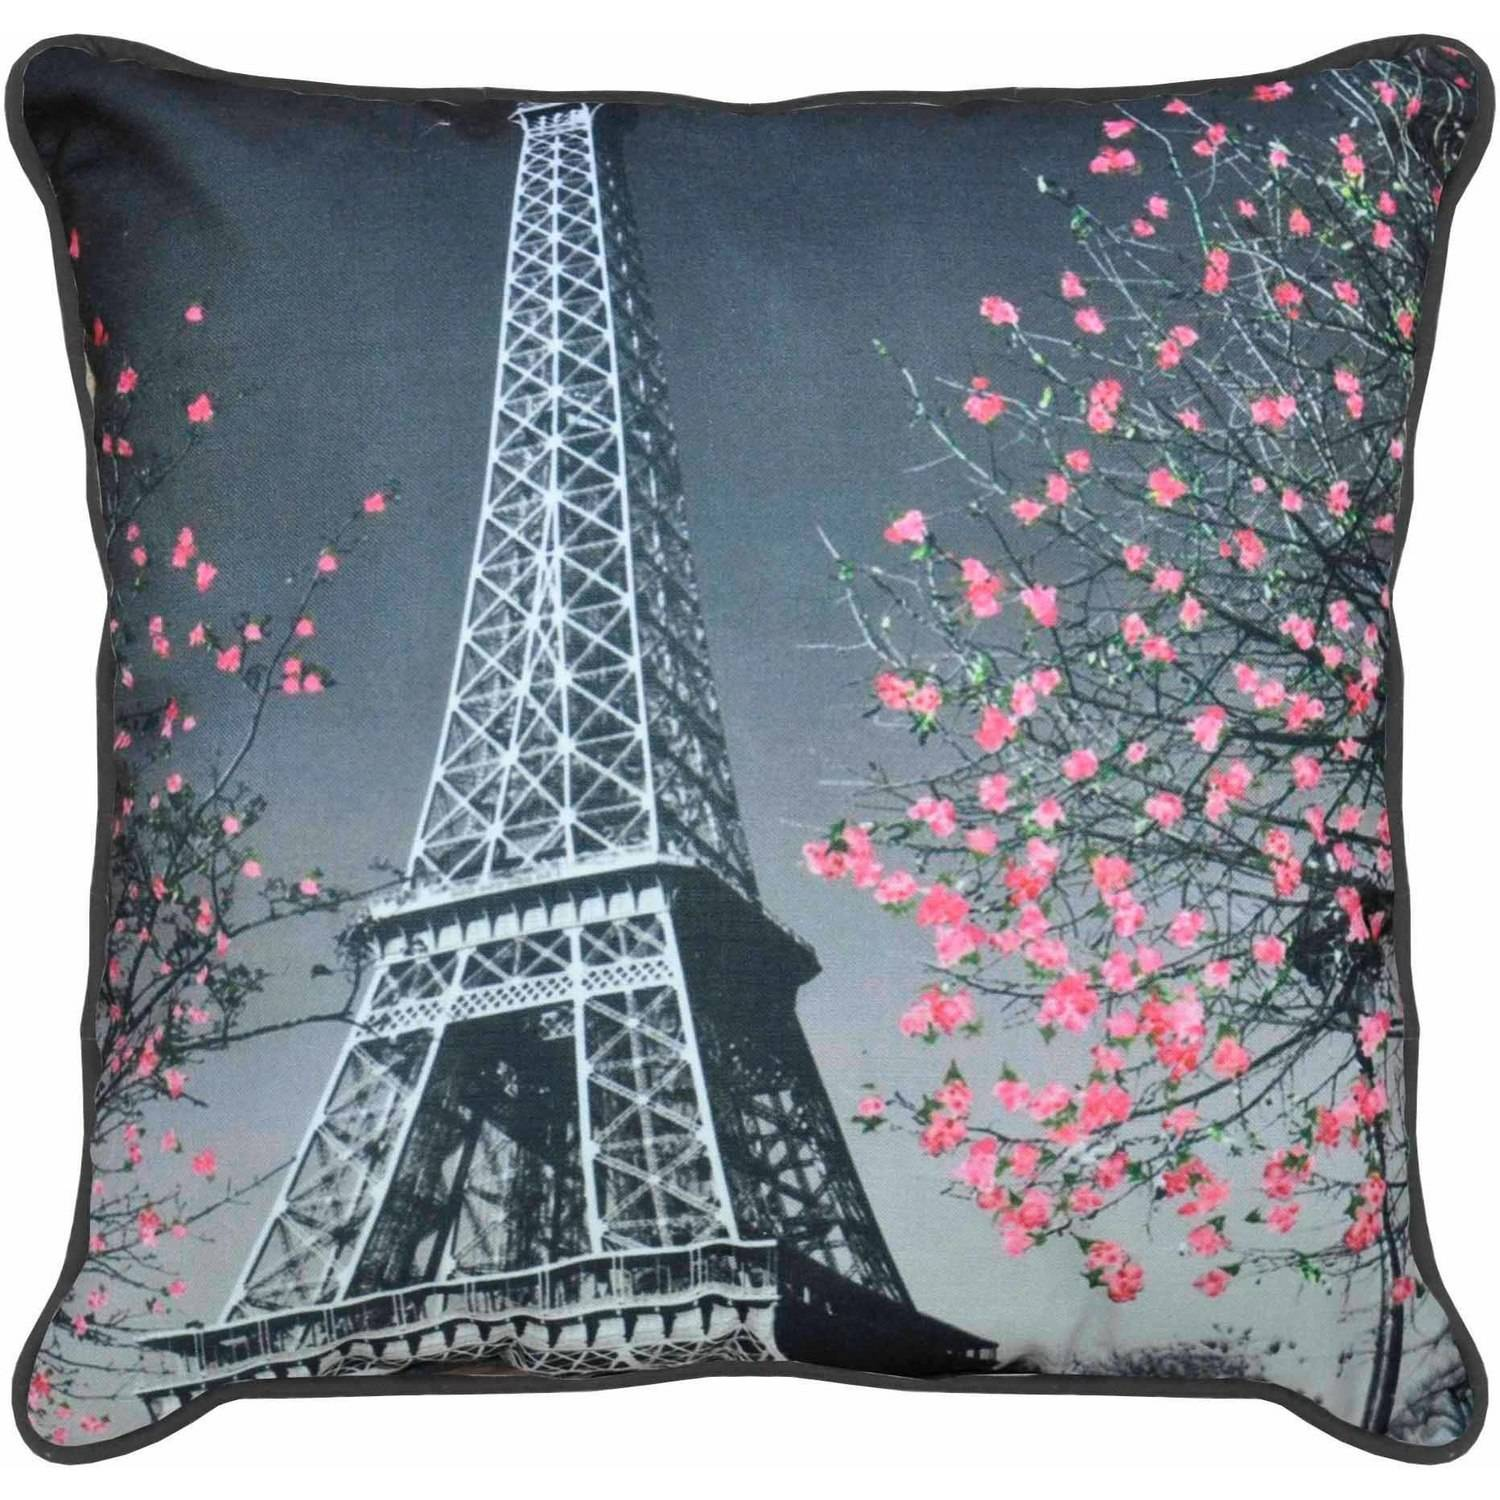 Formula Paris Printed Decorative Pillow, Black and White